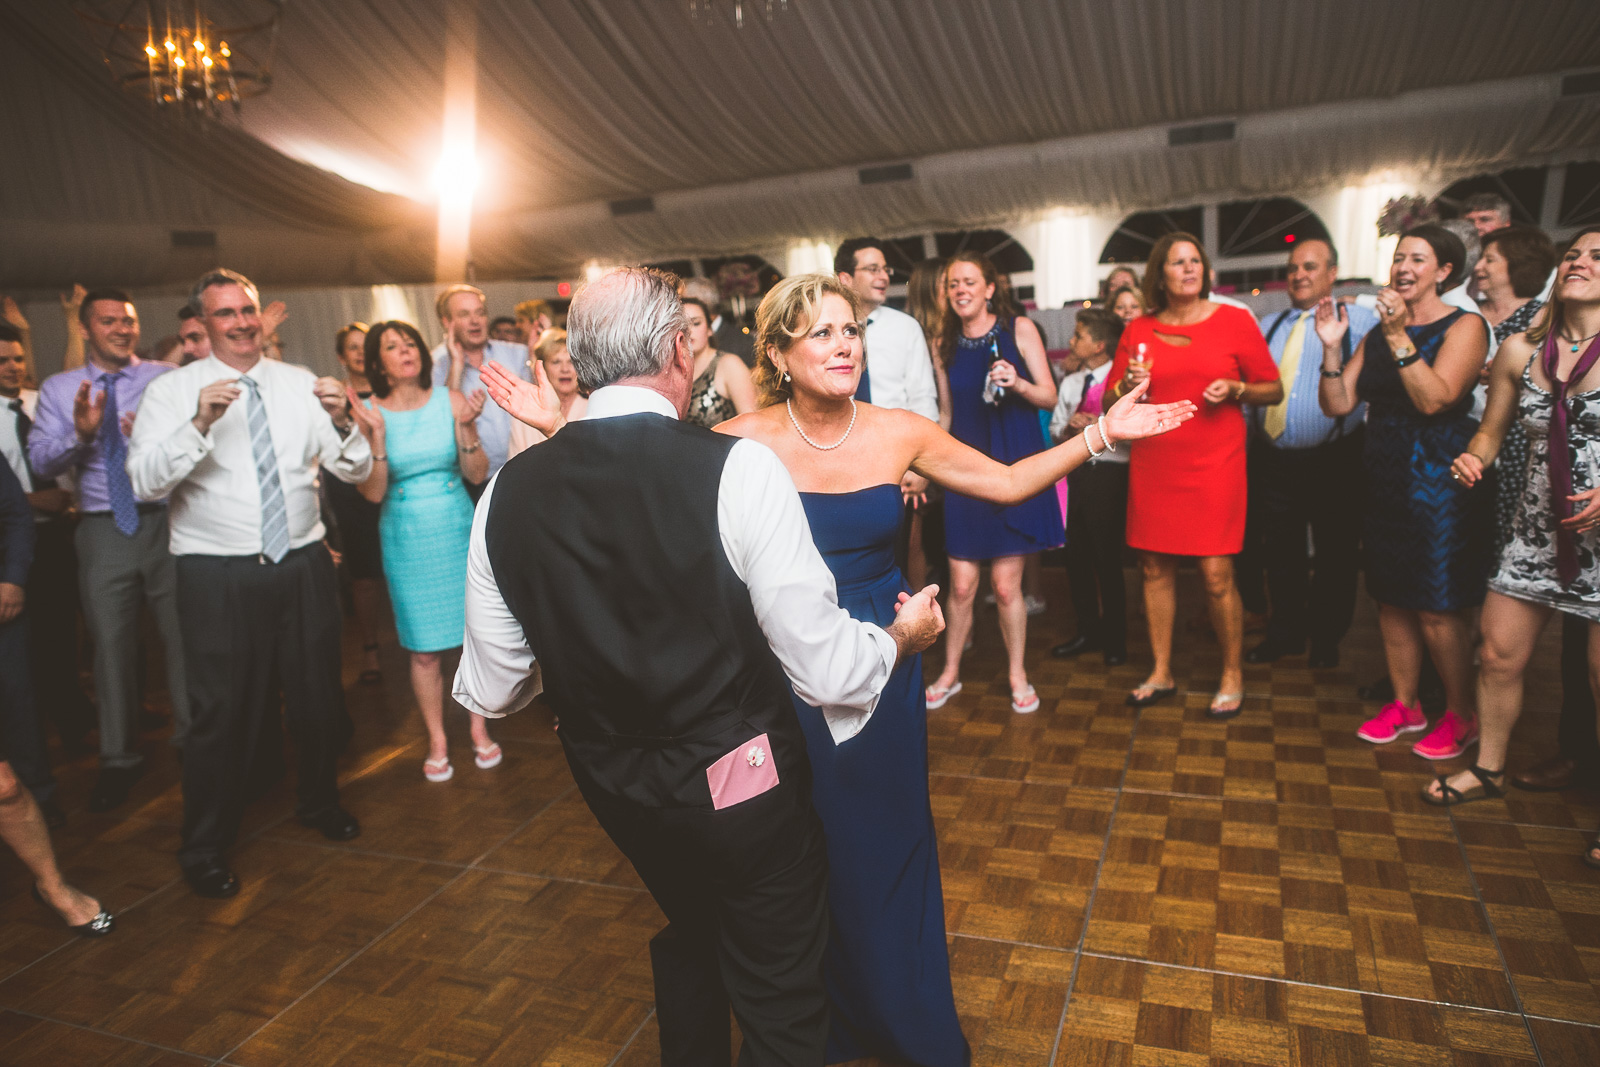 93 dancing at wedding